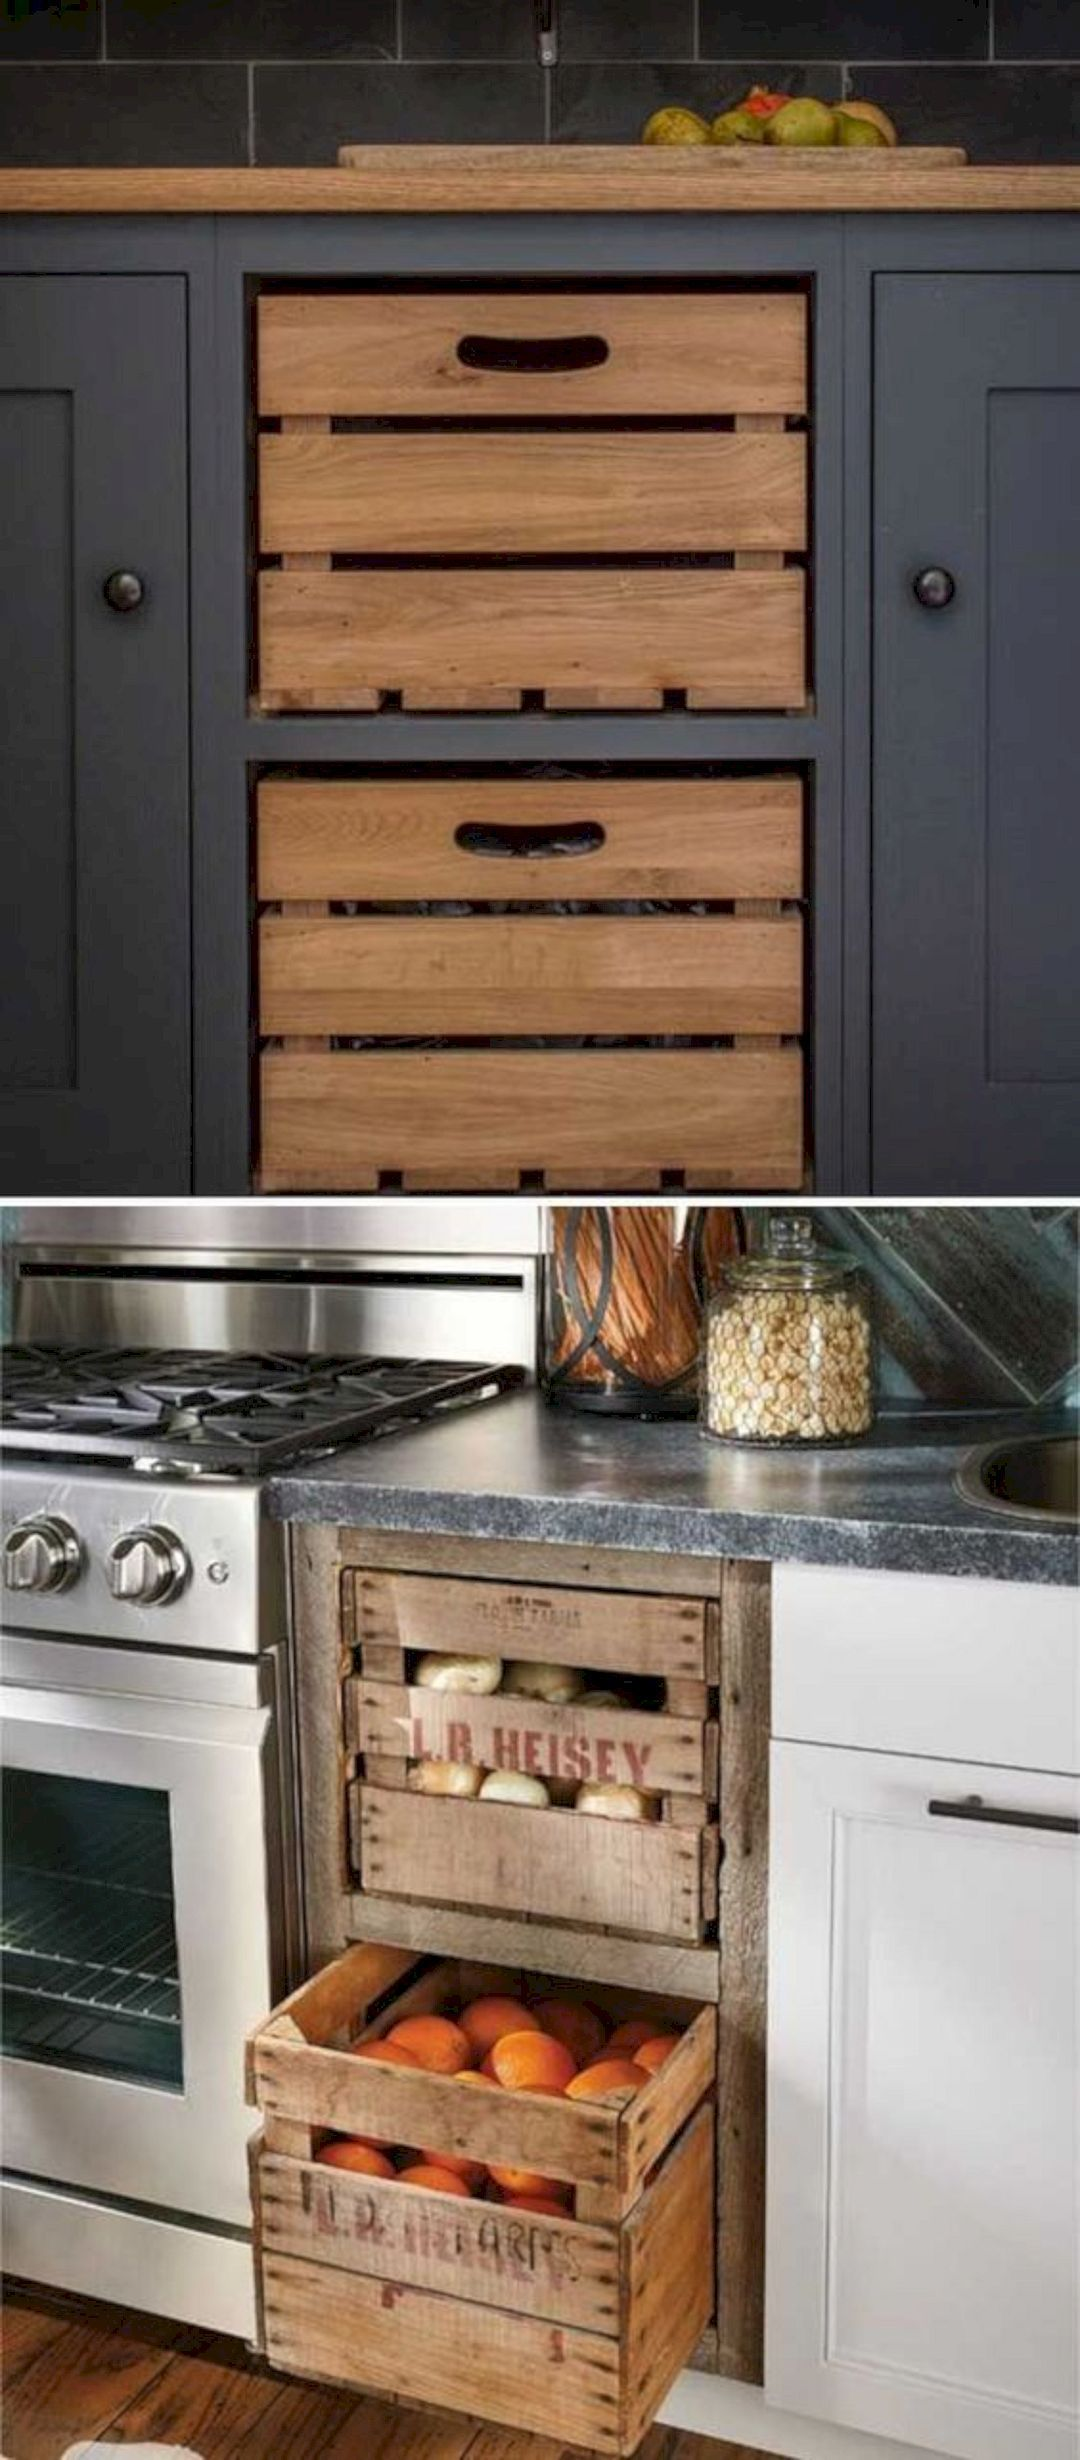 16 Nice Farmhouse Decorating Ideas https://www.futuristarchitecture Rustic Cabinet Ideas For The Kitchen Html on ideas for cherry kitchen cabinets, ideas for repainting kitchen cabinets, ideas for white kitchen cabinets, ideas for painted kitchen cabinets,